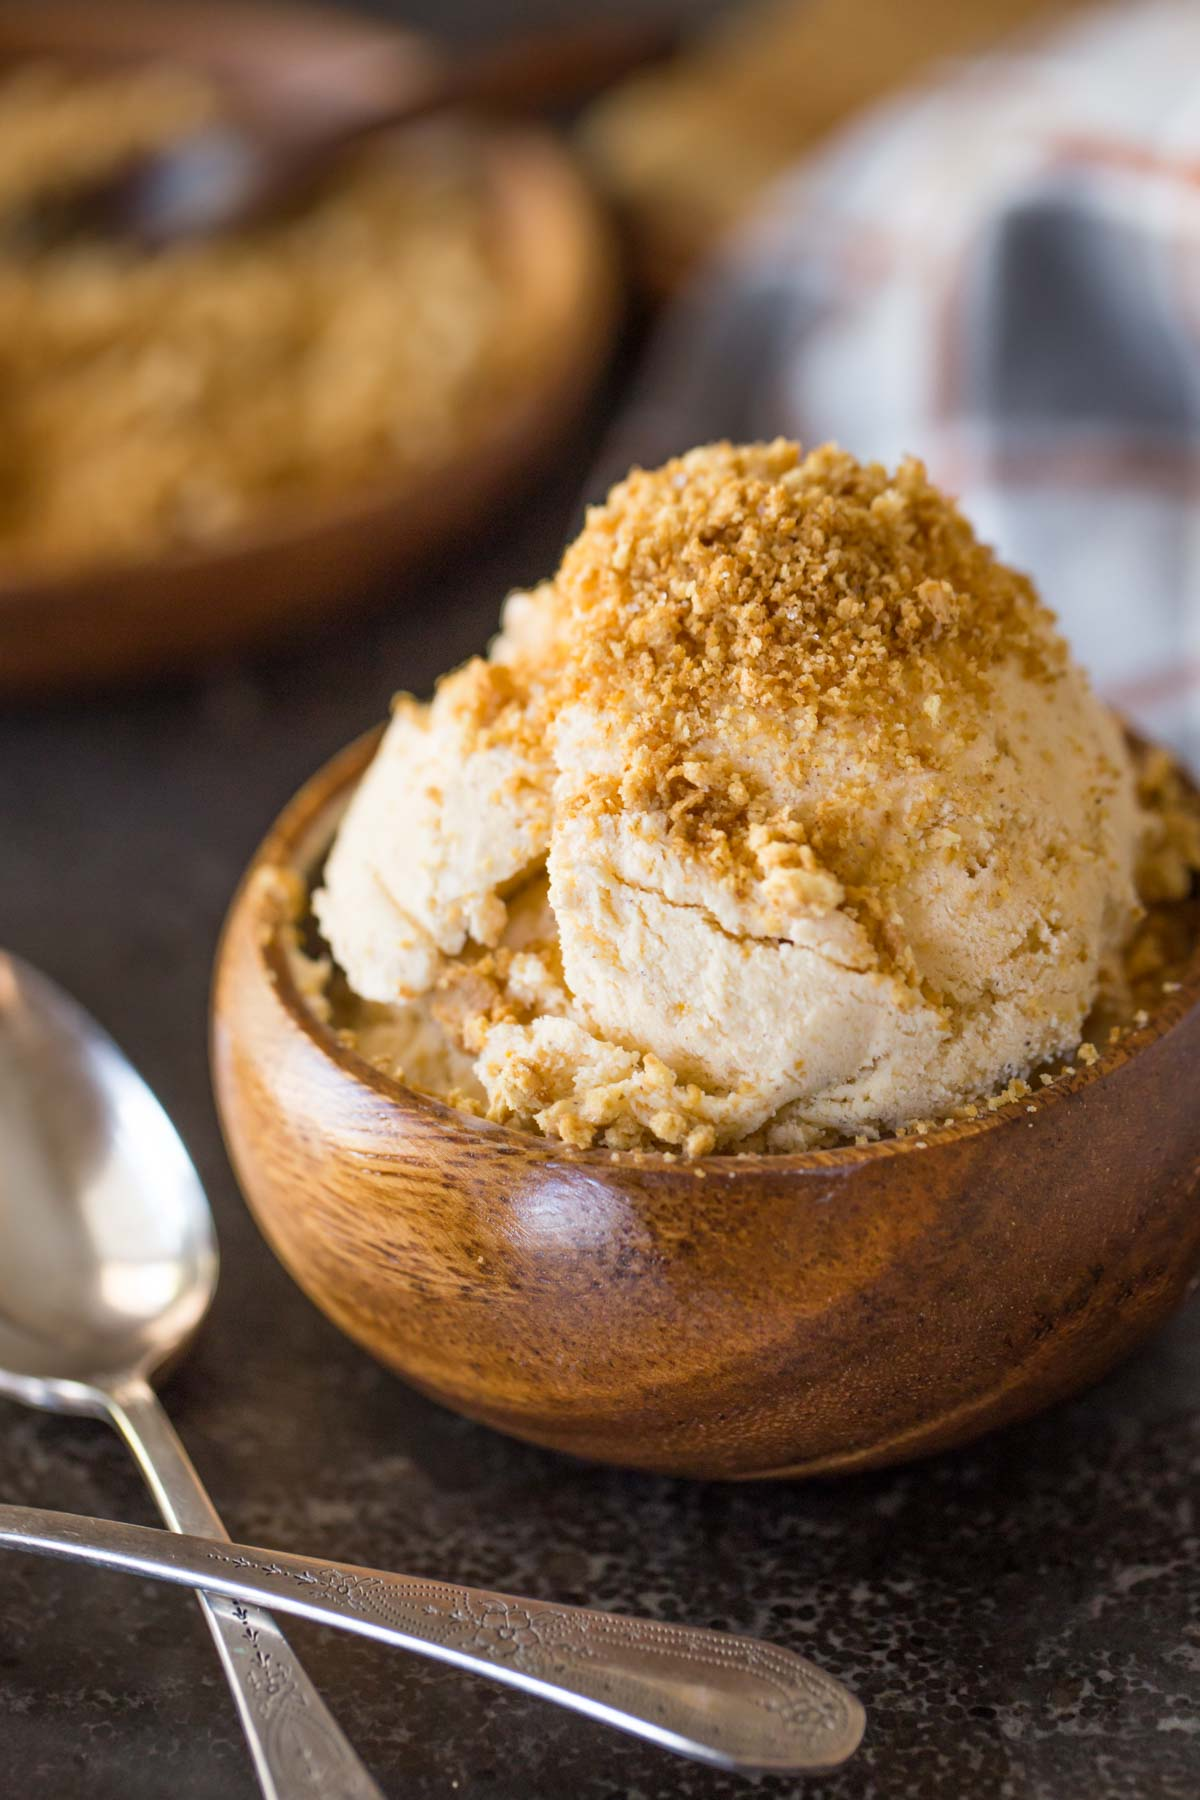 Homemade Pumpkin Pie Ice Cream in a wood bowl, topped with crushed graham cracker crumbs.